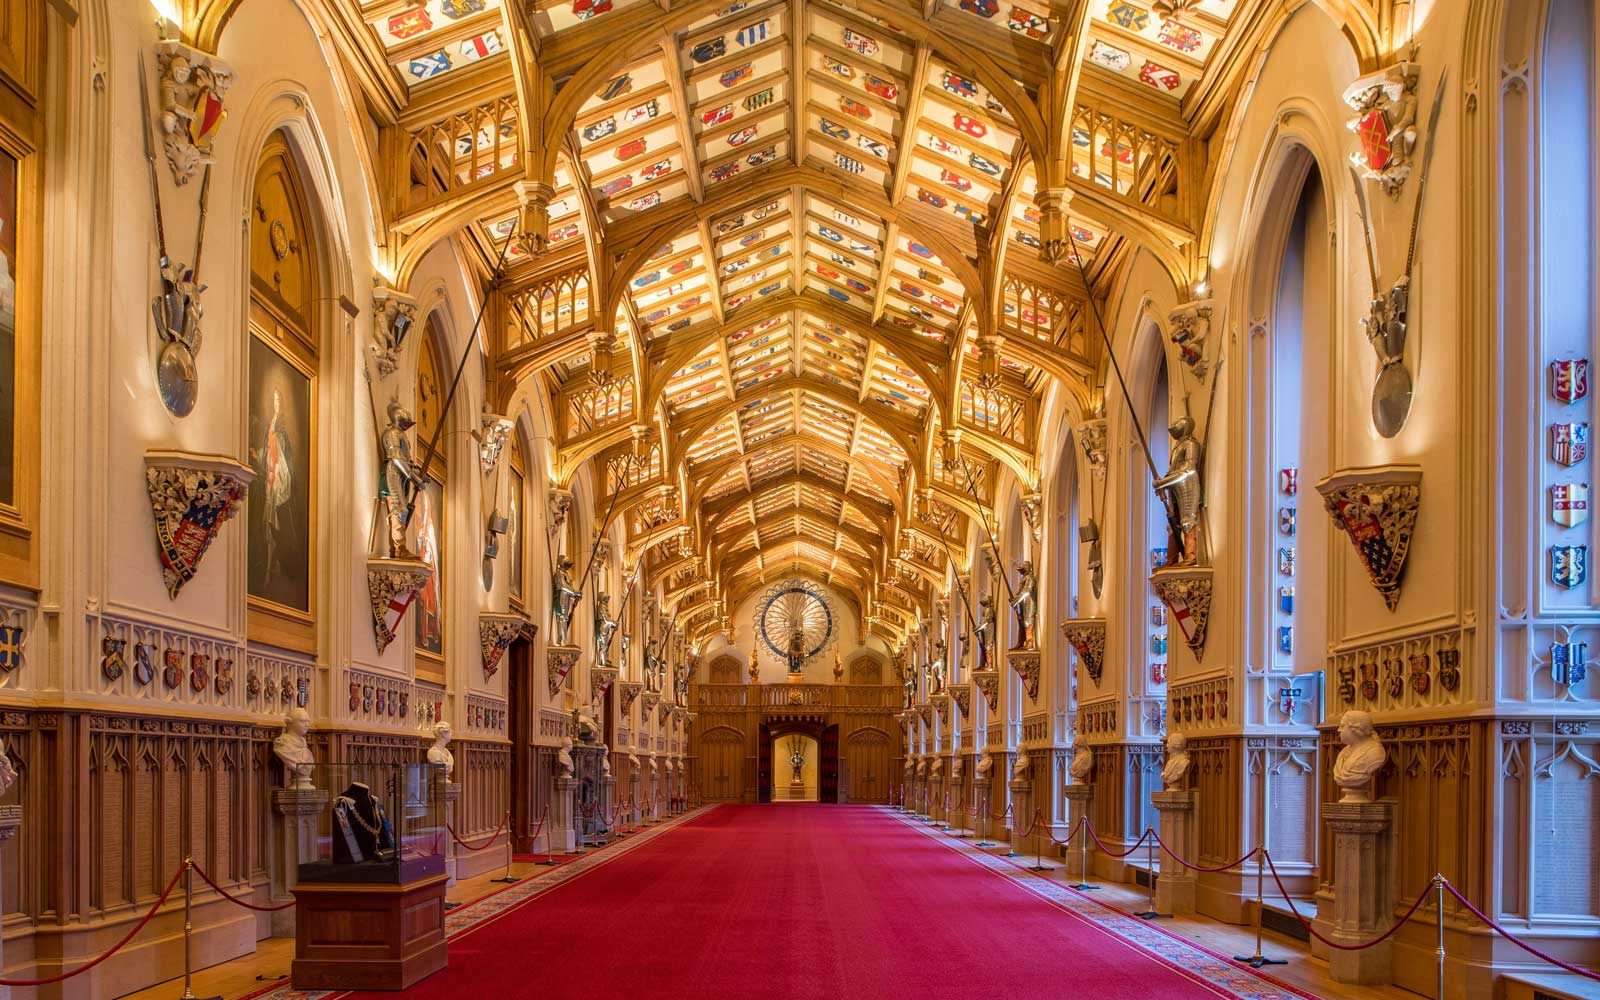 A general view shows St George's Hall at Windsor Castle